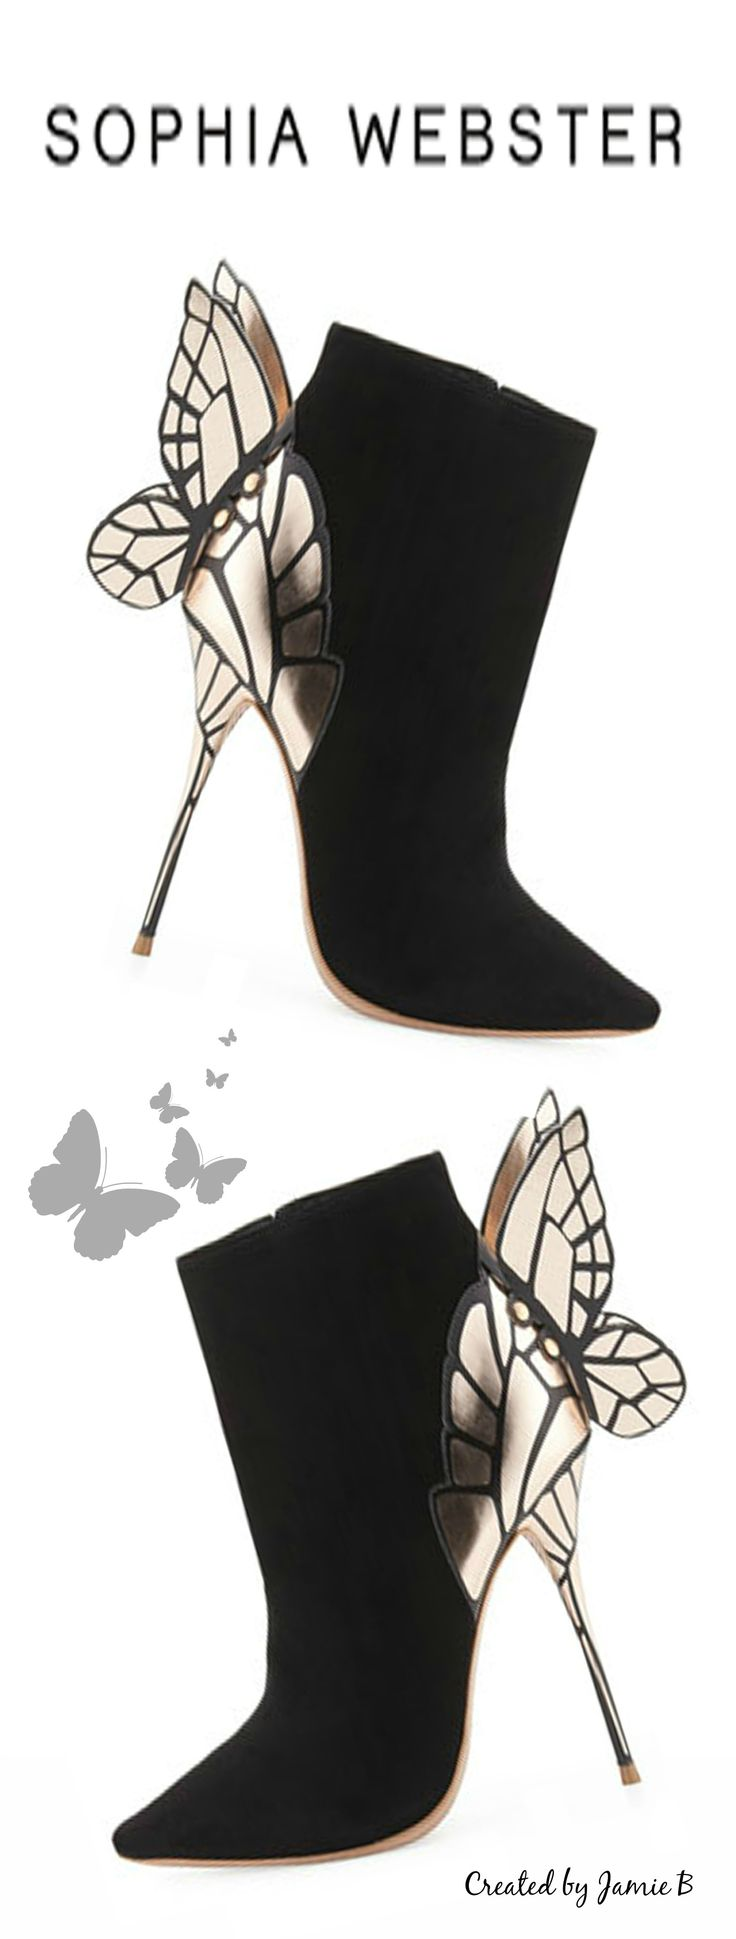 Pre Fall 2015 Sophia Webster | Chiara 3D Butterfly Wing Boot, Black | House of Beccaria~